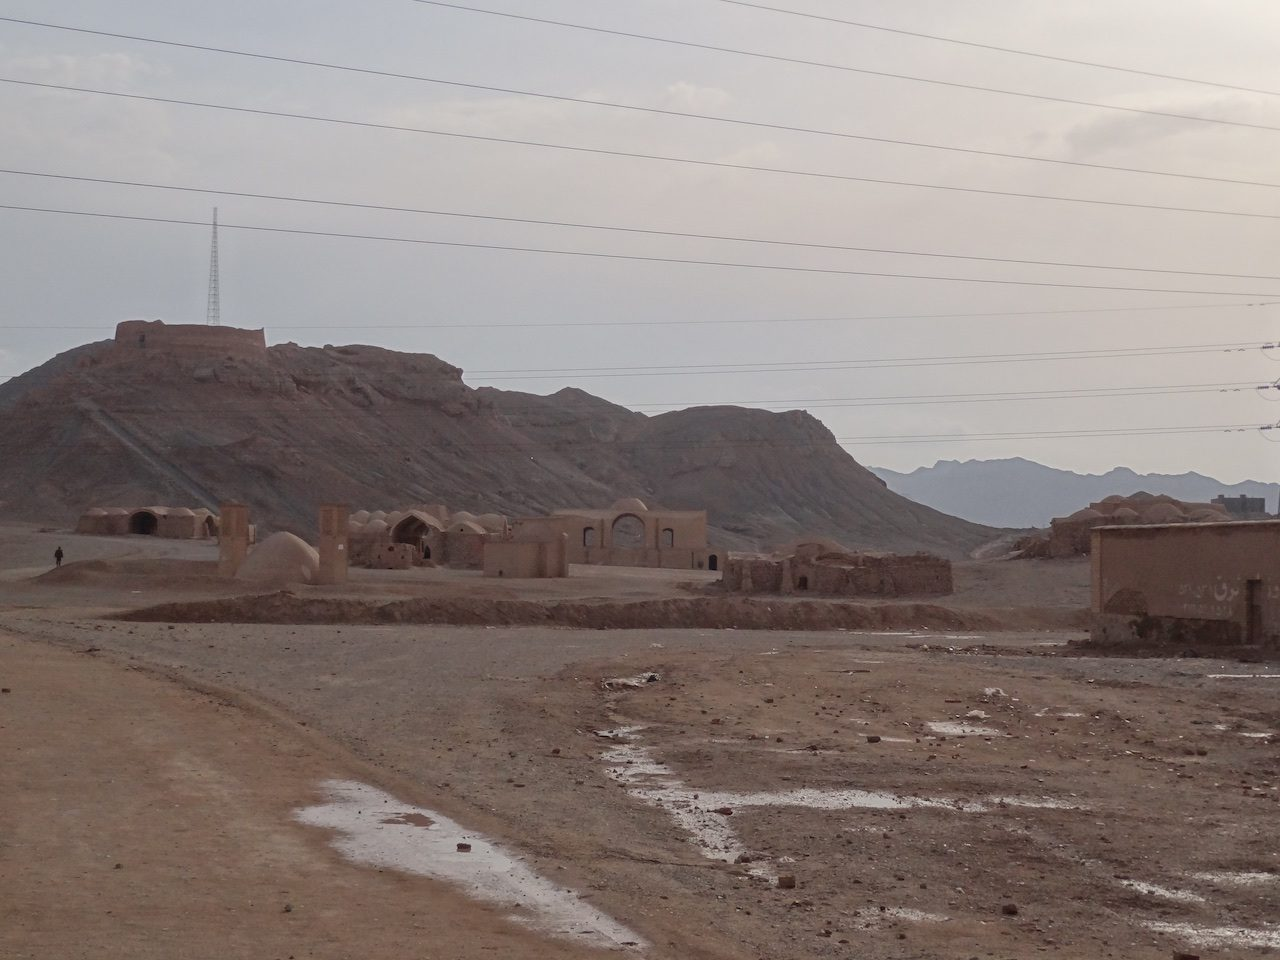 Dakhma with old-looking buildings in the foreground